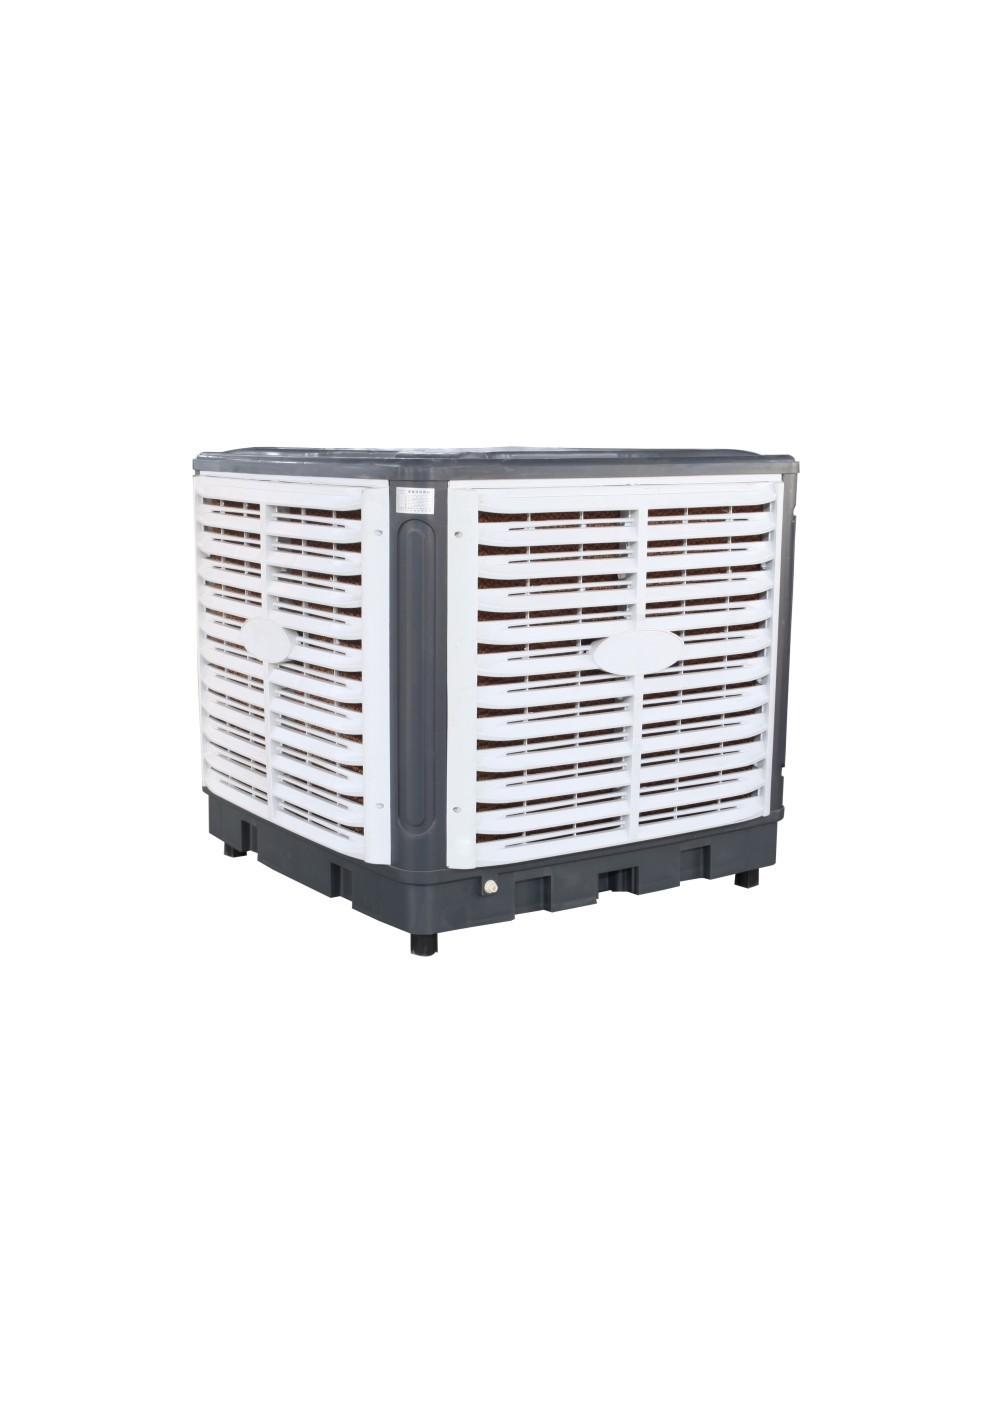 DUCT COOLER / BOTTOM DISCHARGE AIR COOLER